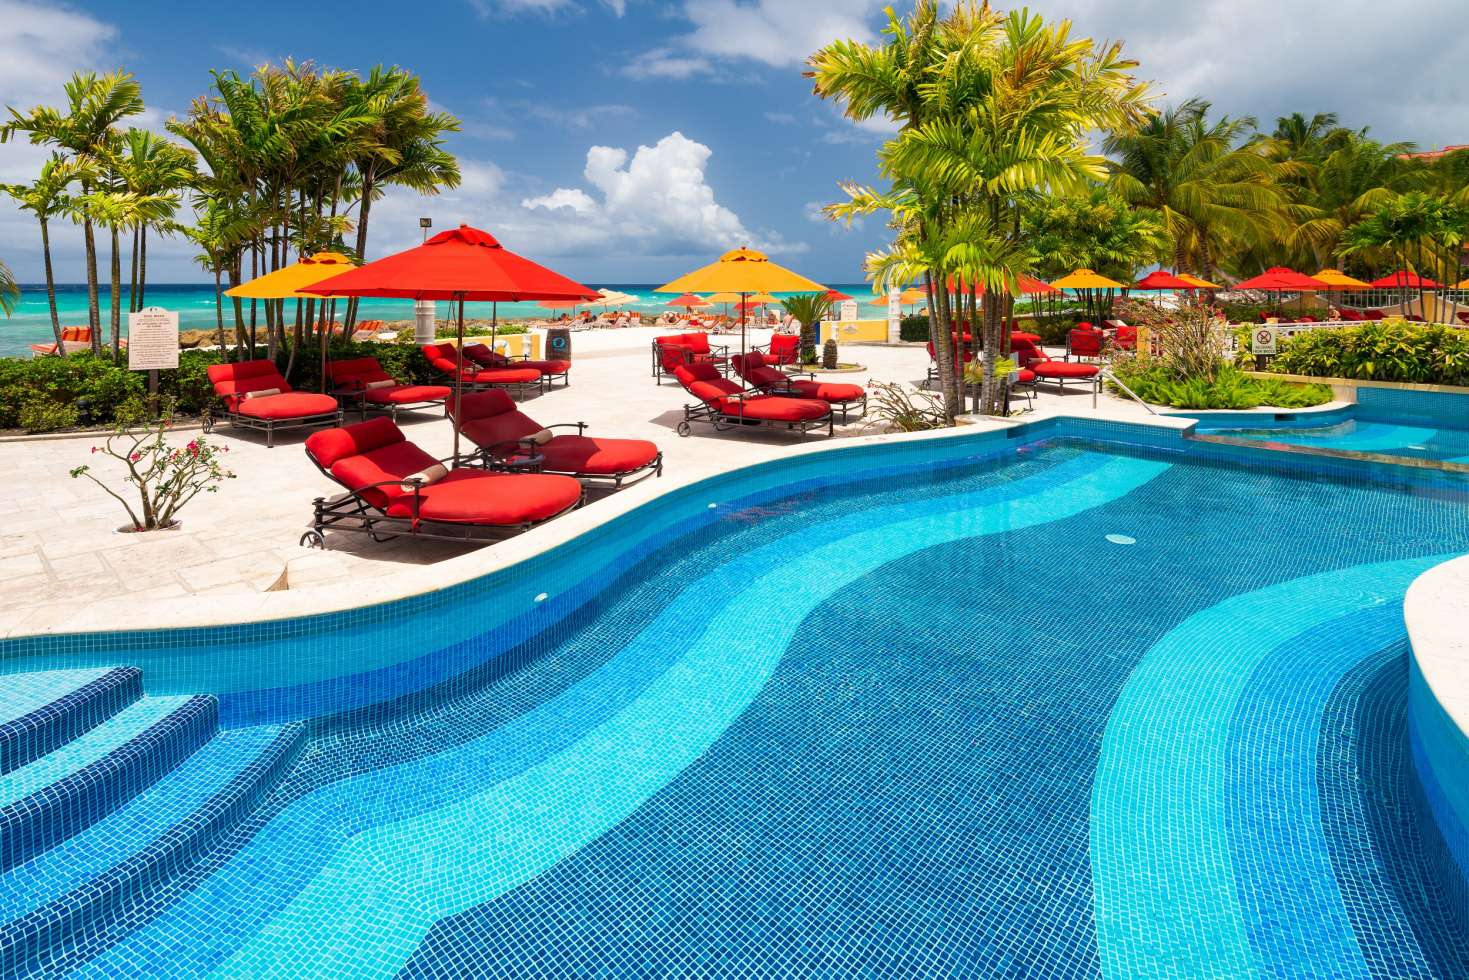 Image of Ocean Two by Ocean Hotels, Saint Lawrence Gap, Barbados